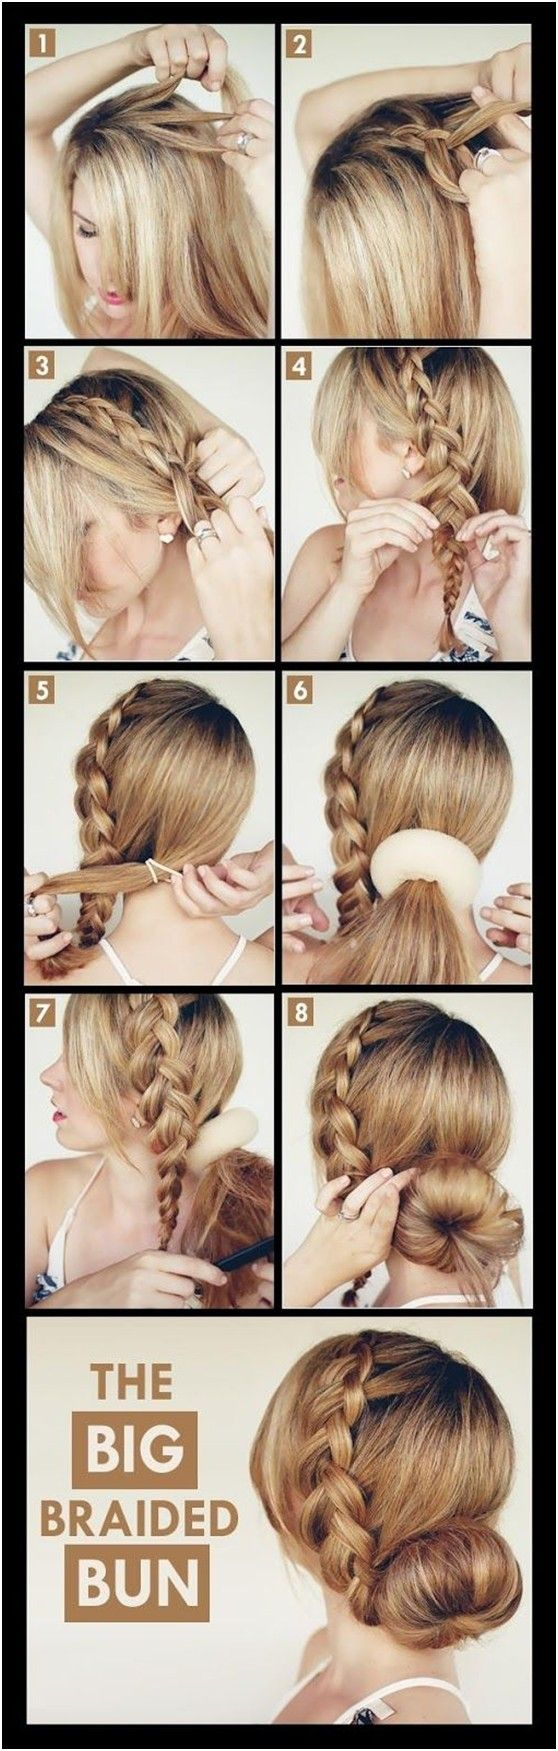 19 fabulous braided updo hairstyles with tutorials - pretty